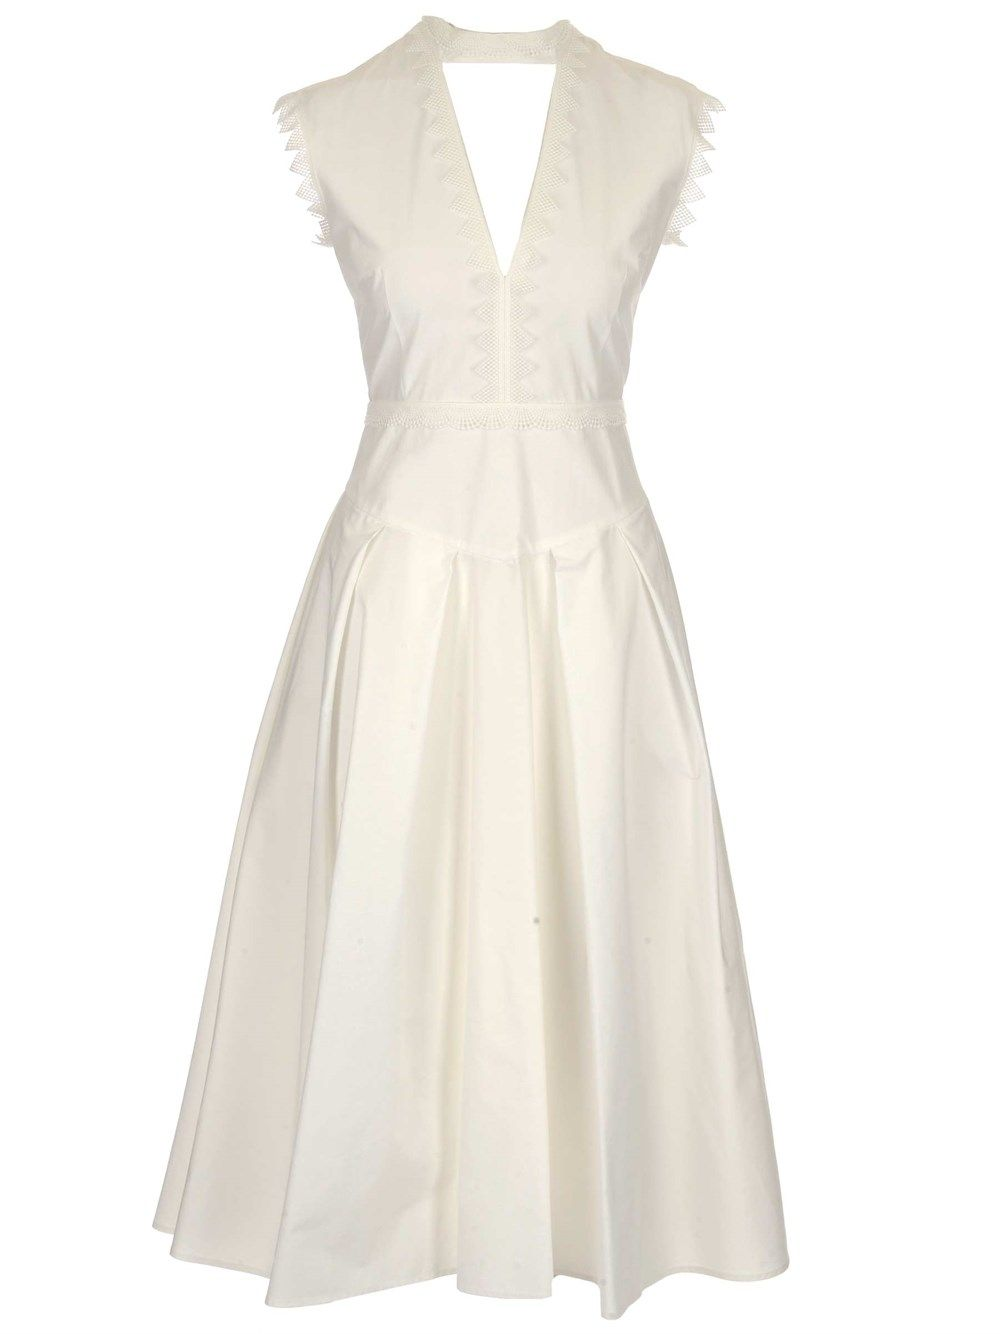 Msgm MSGM WOMEN'S WHITE OTHER MATERIALS DRESS